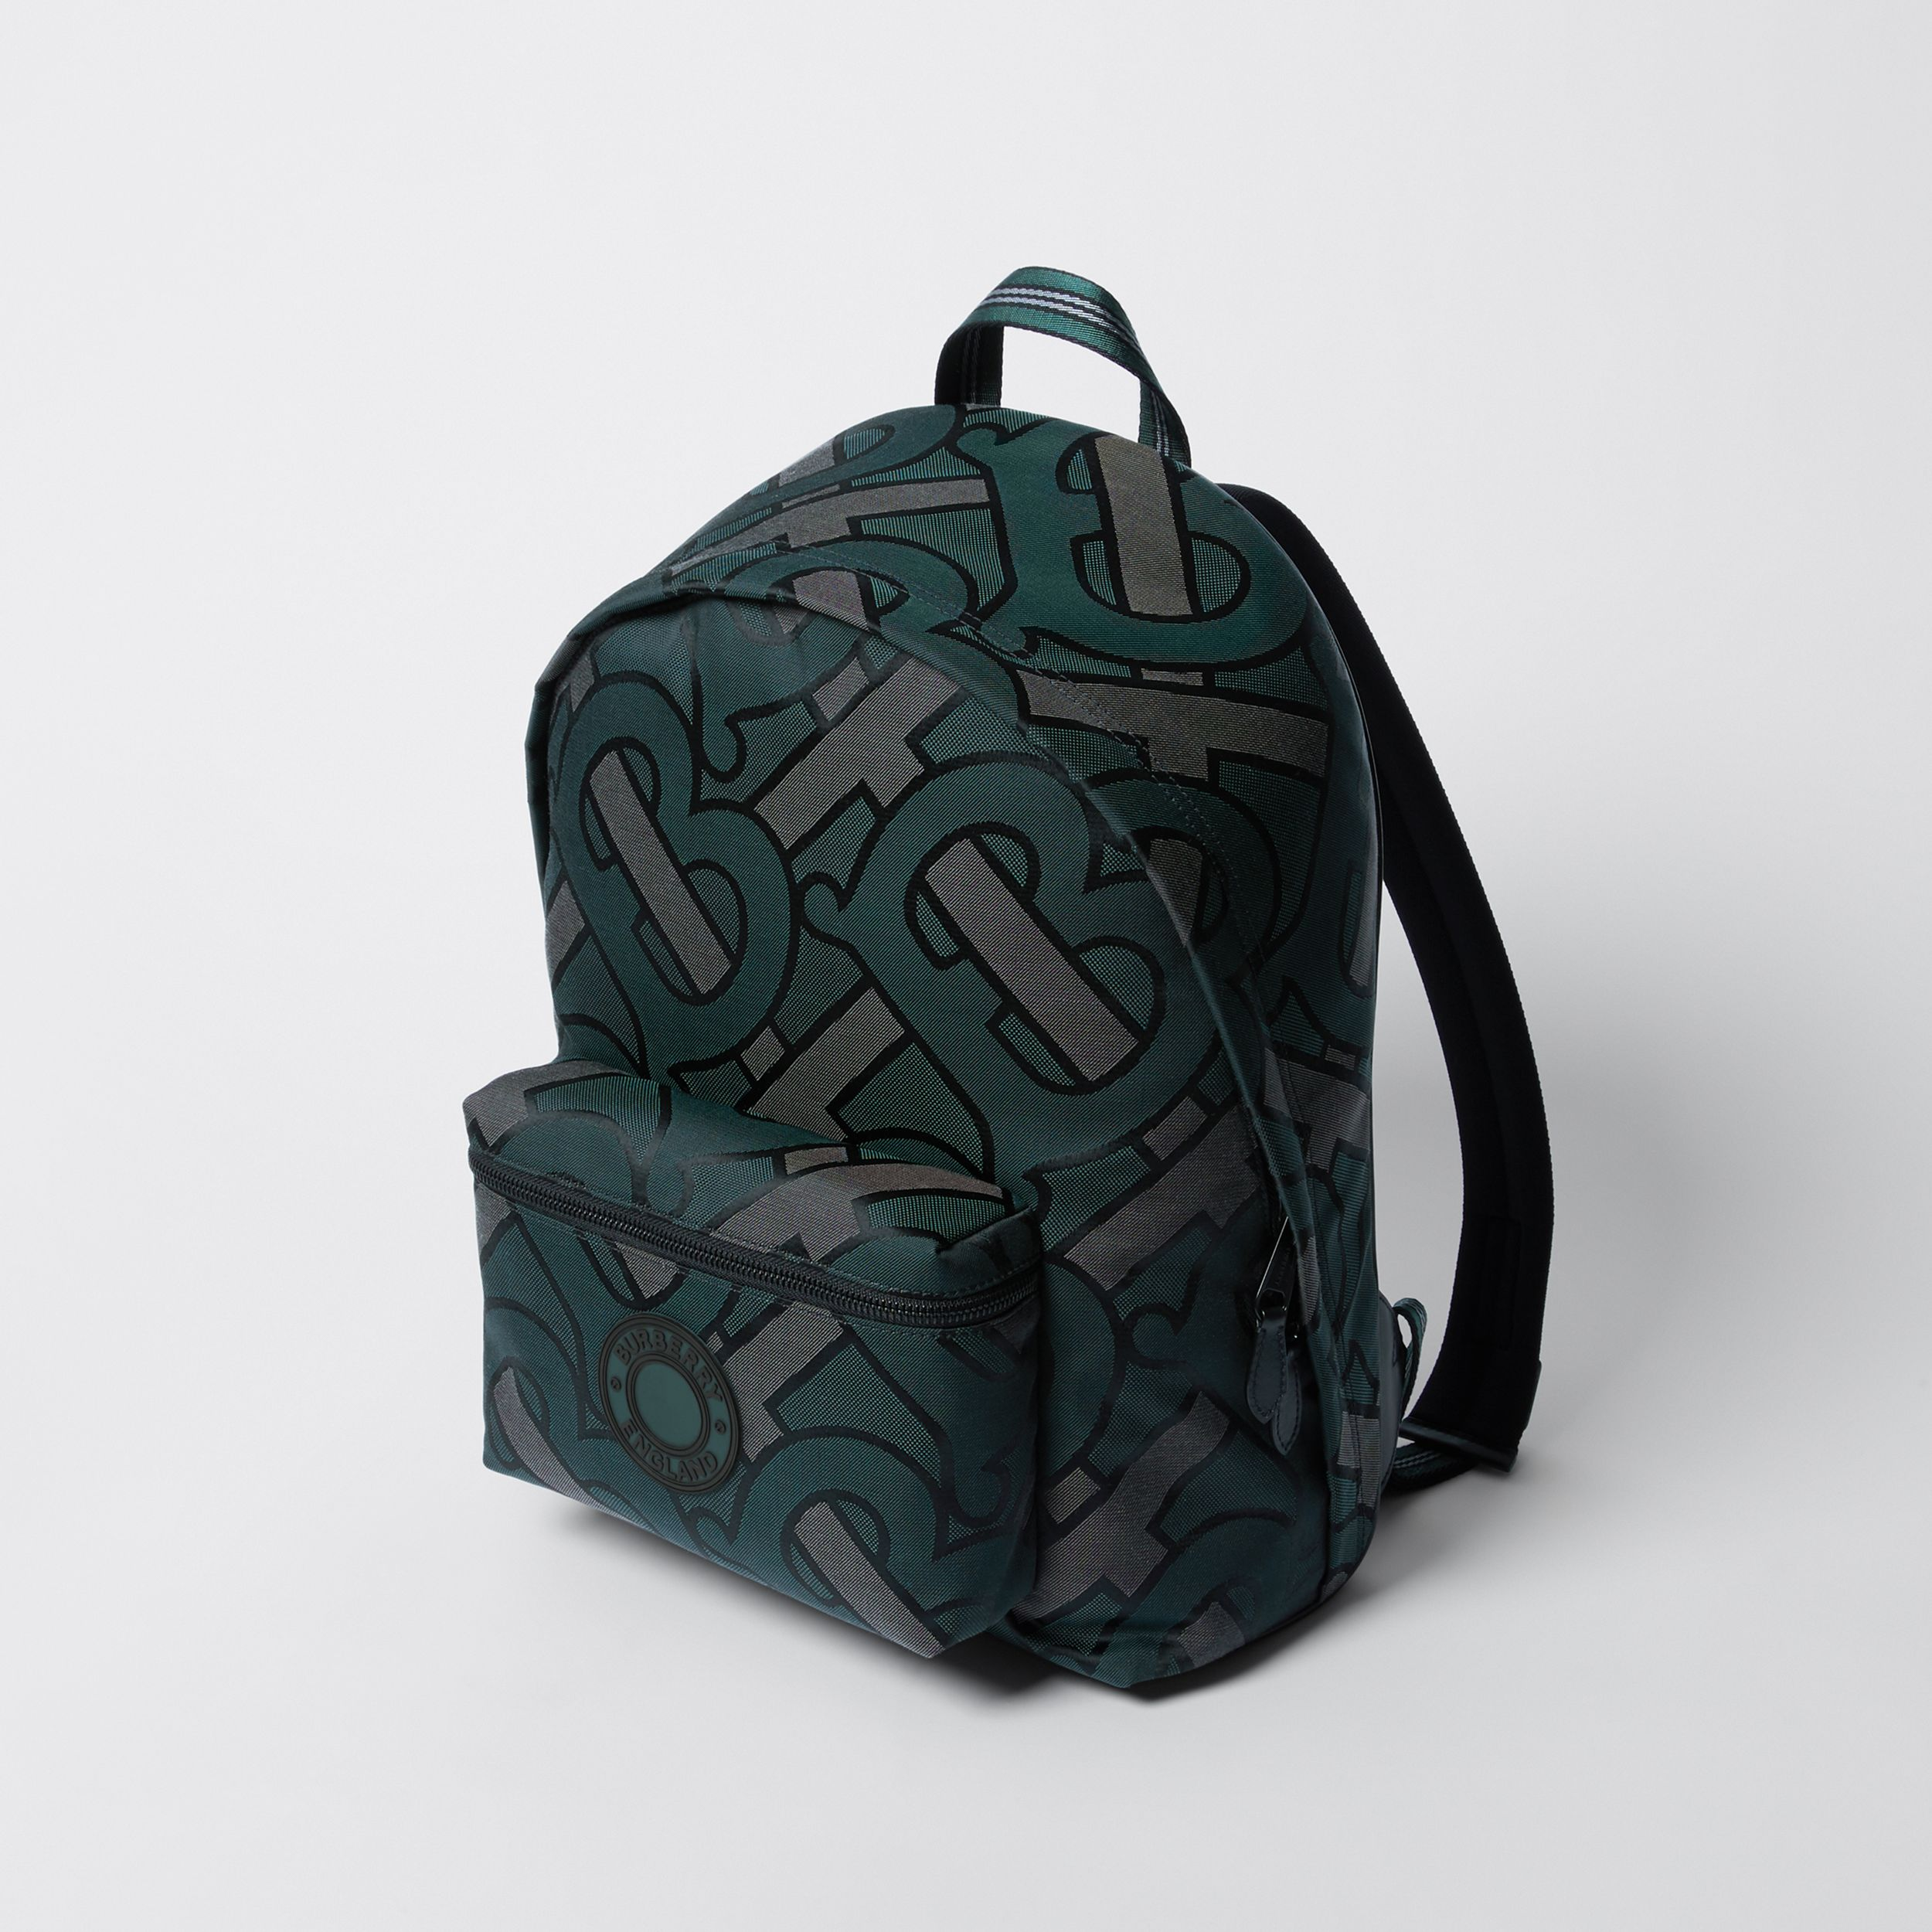 Monogram Recycled Polyester Jacquard Backpack in Forest Green - Men | Burberry - 4